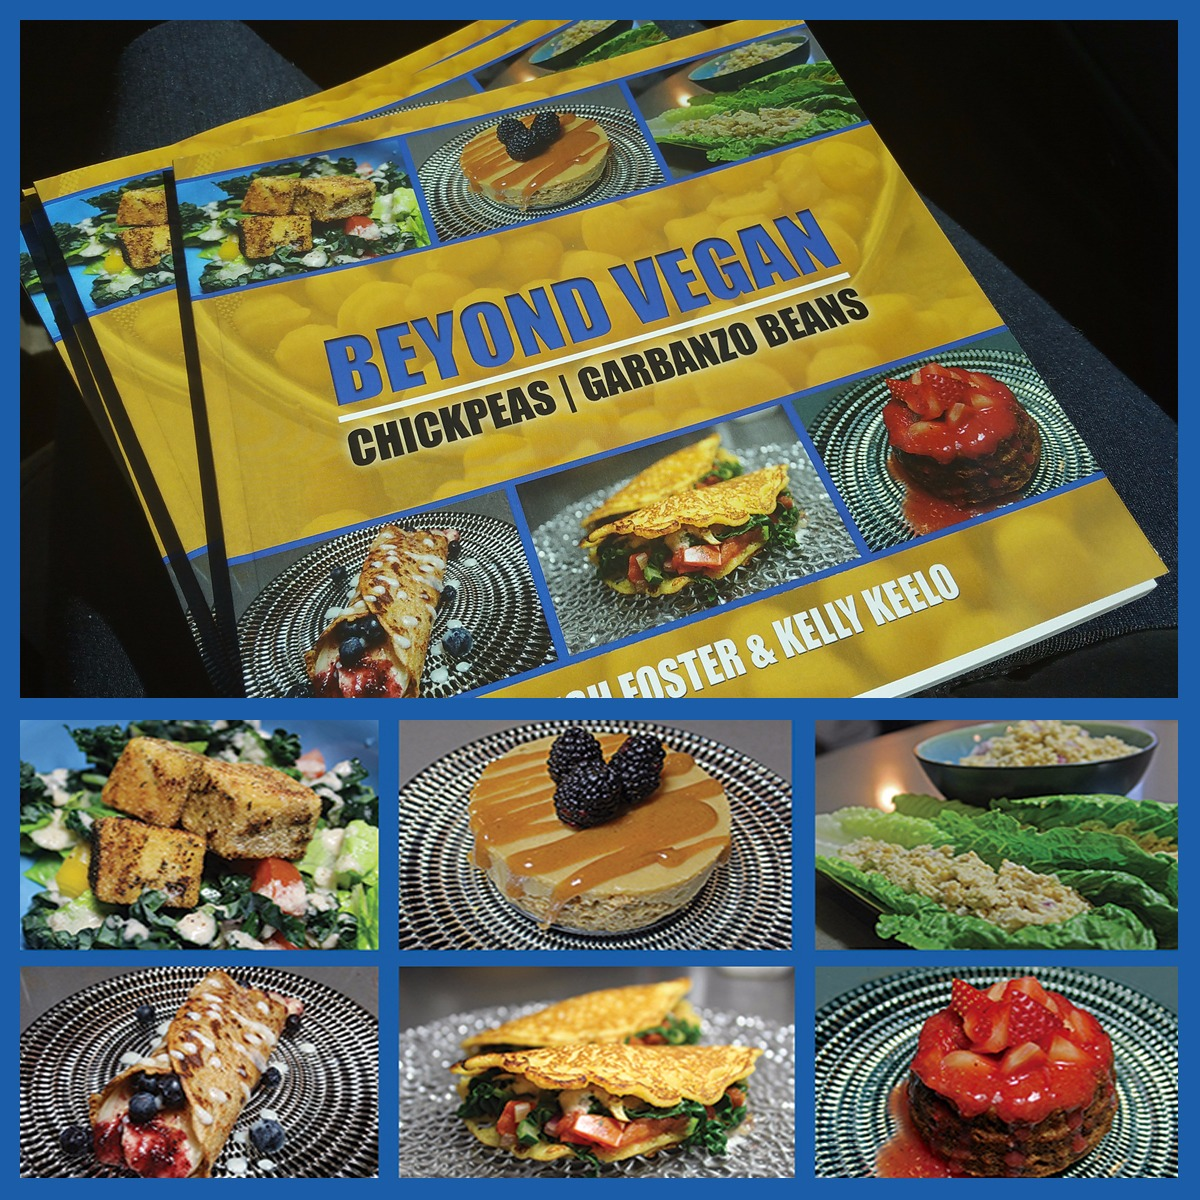 BEYOND VEGAN | CHICKPEAS COOKBOOK | PAPERBACK